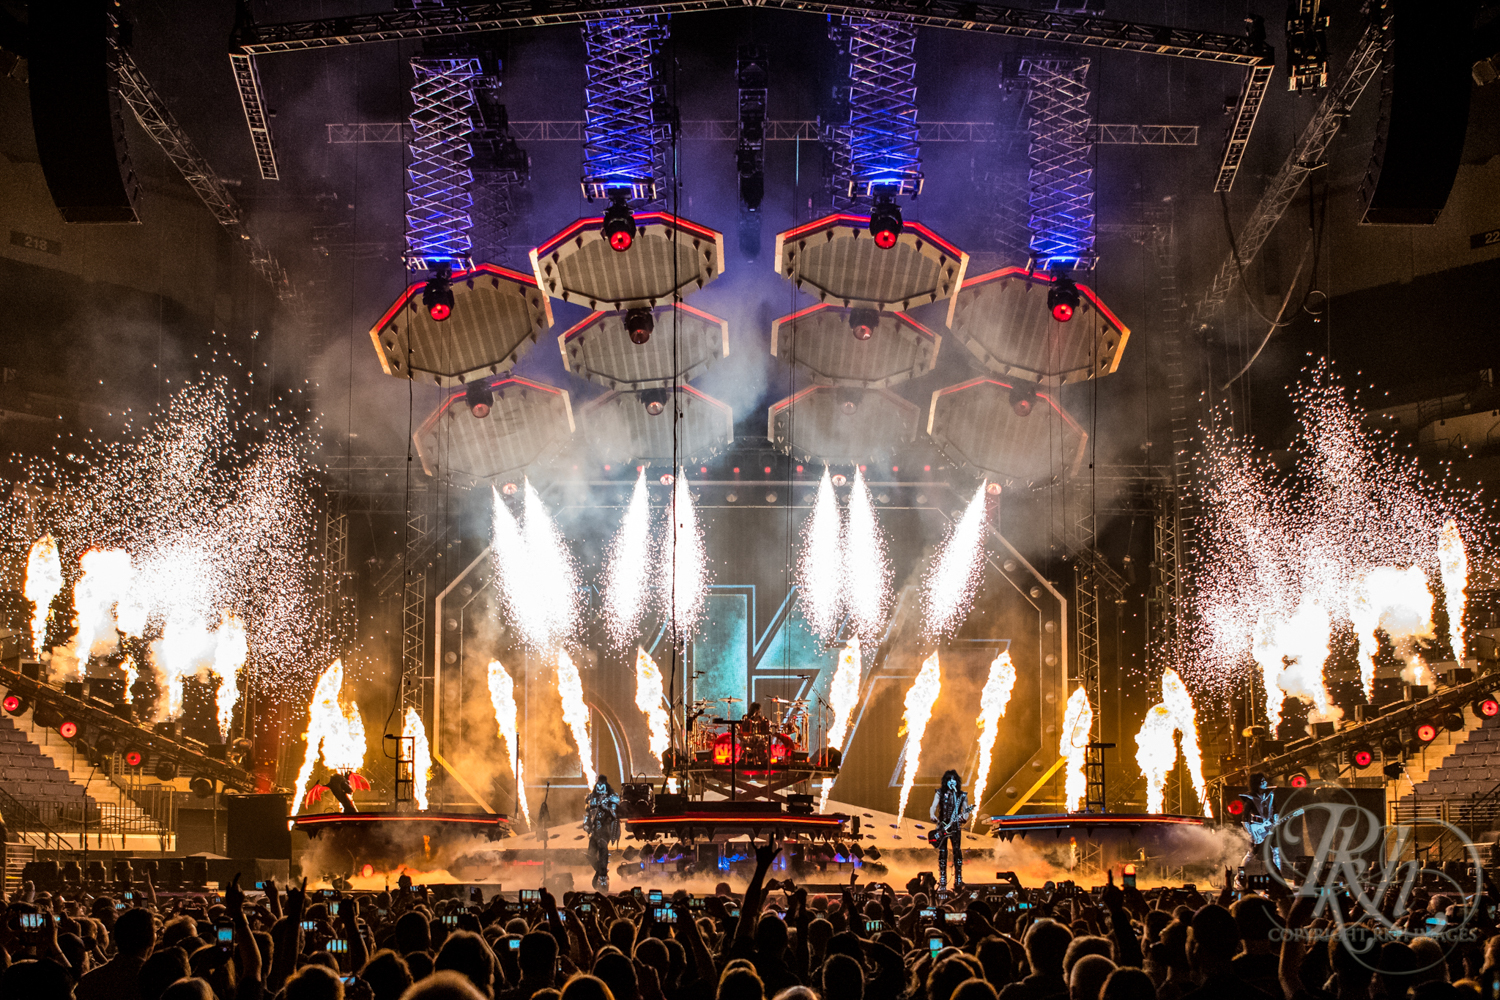 Kiss - End of the Road Tour - Target Center - Minneapolis - Concert Photography - RKH Images  (3 of 12).jpg